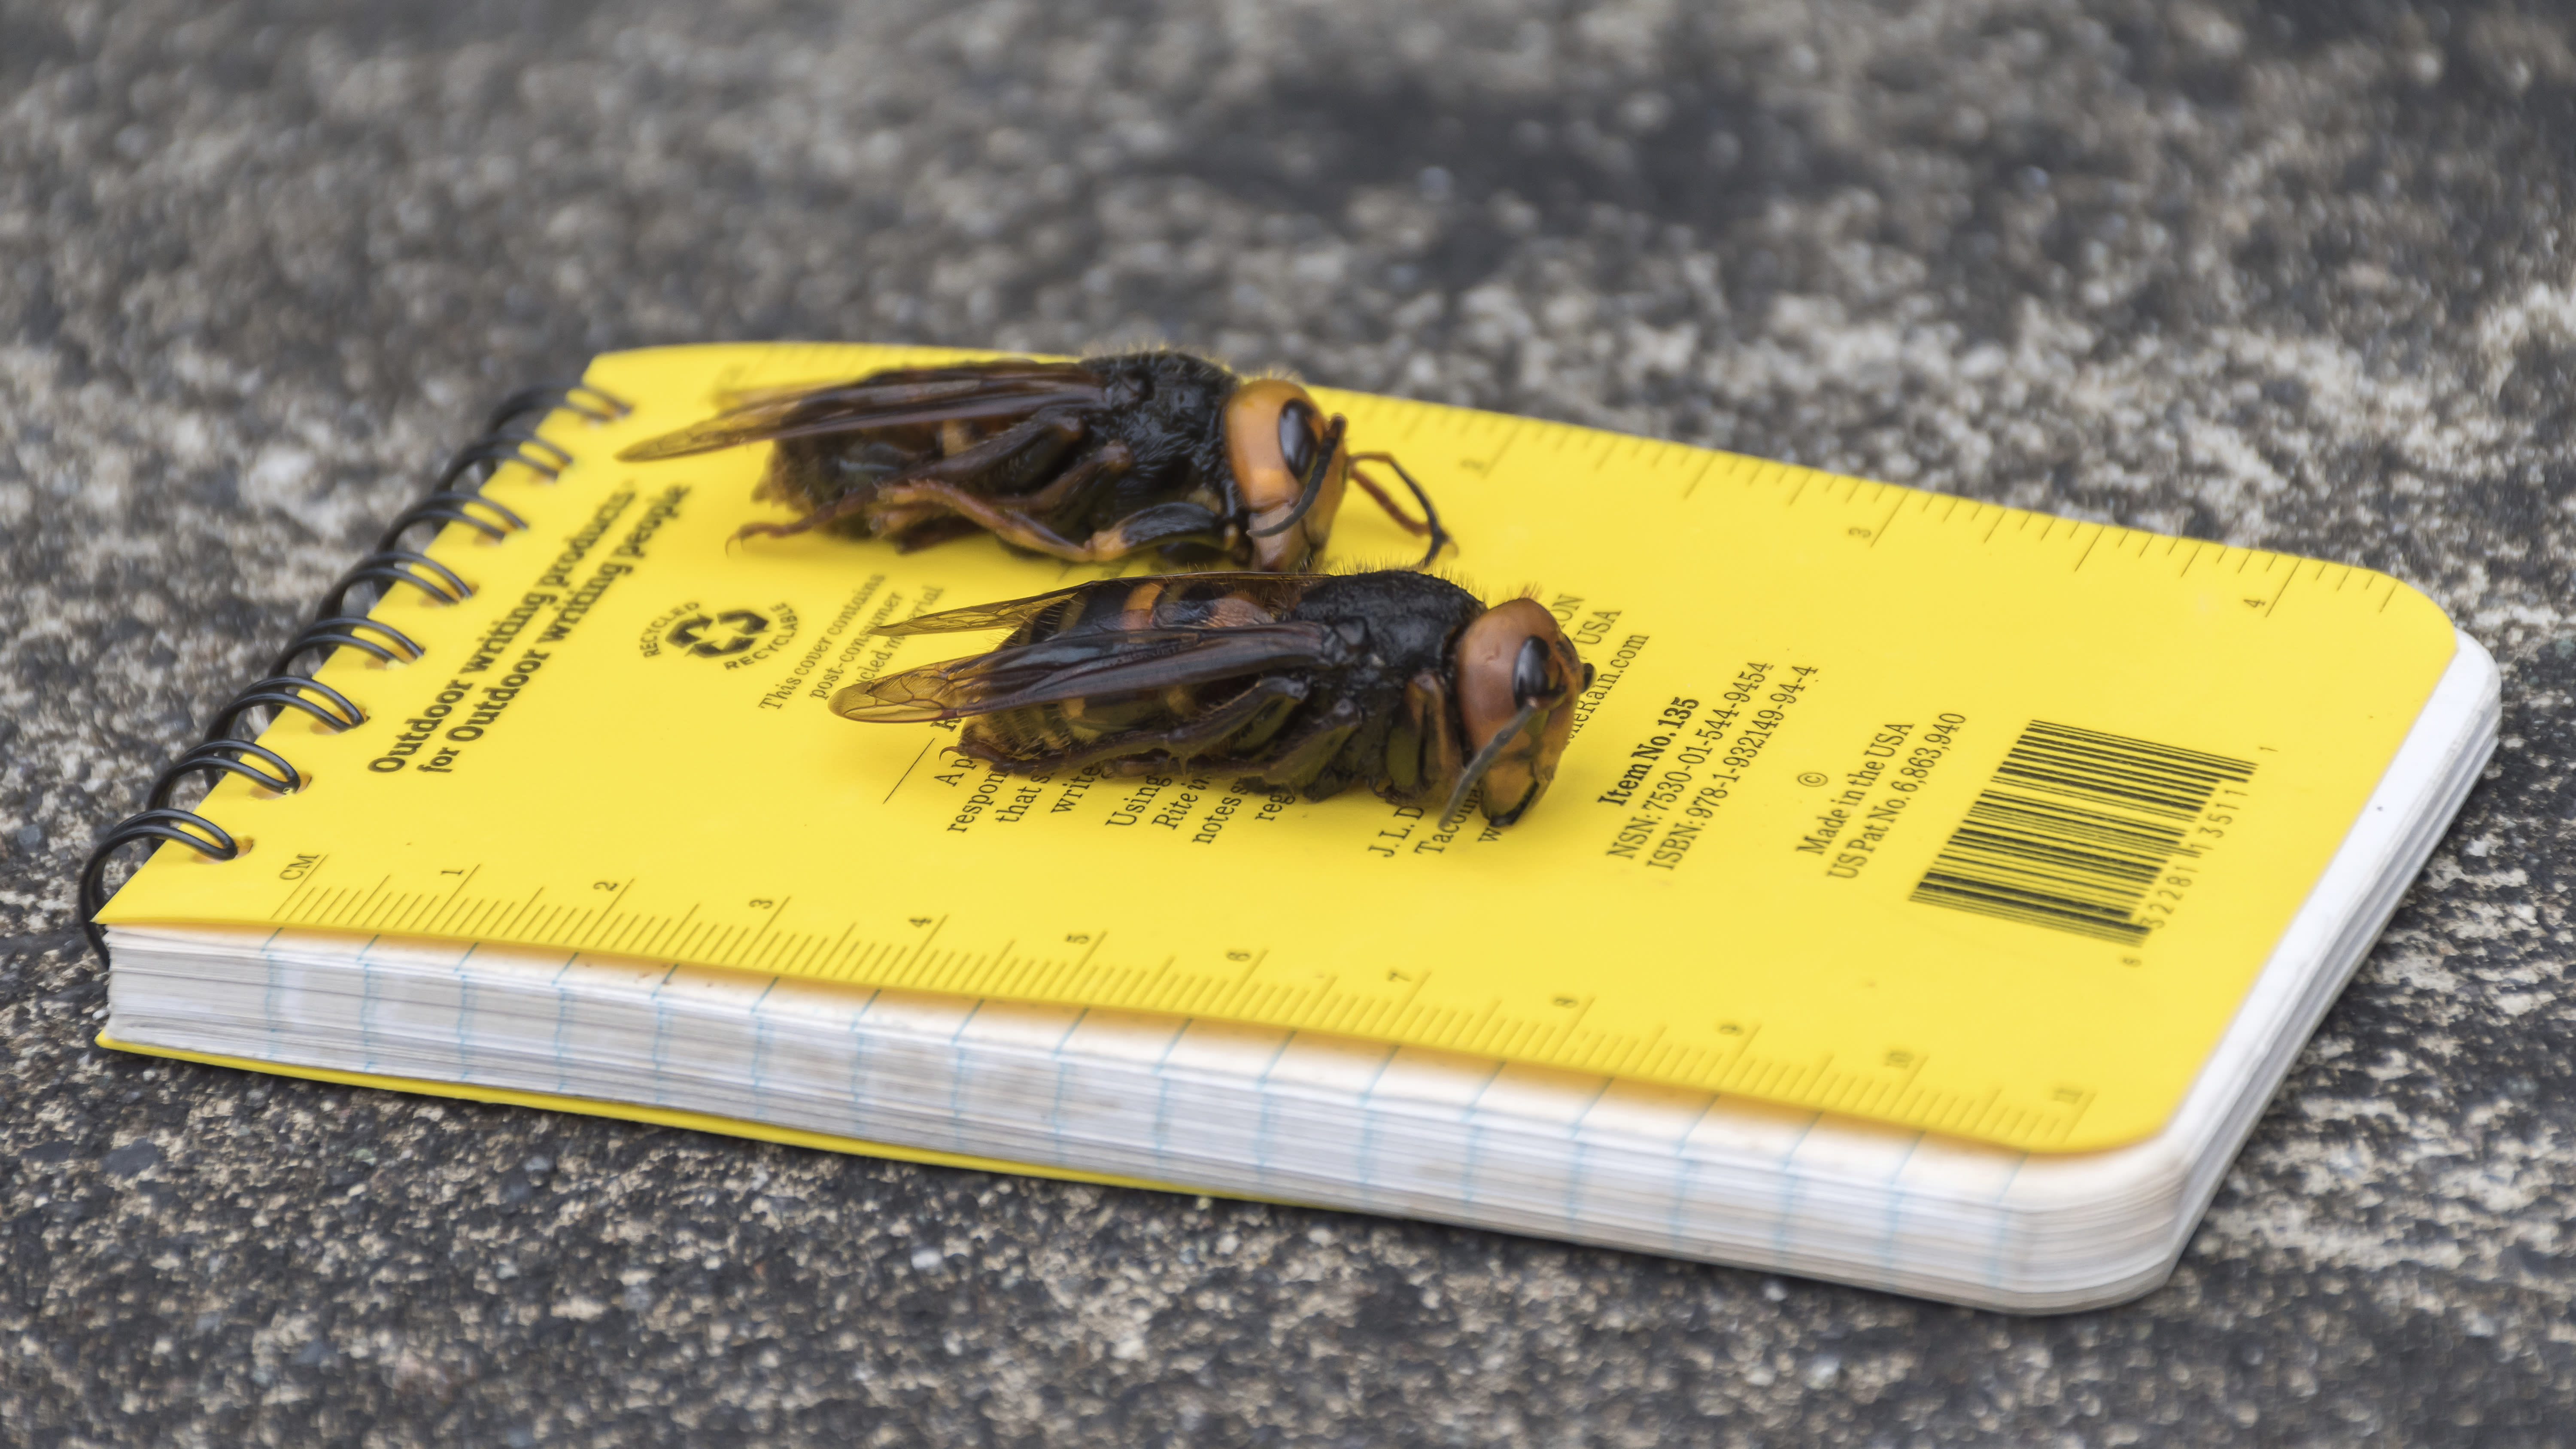 'Murder hornets' are now in United States